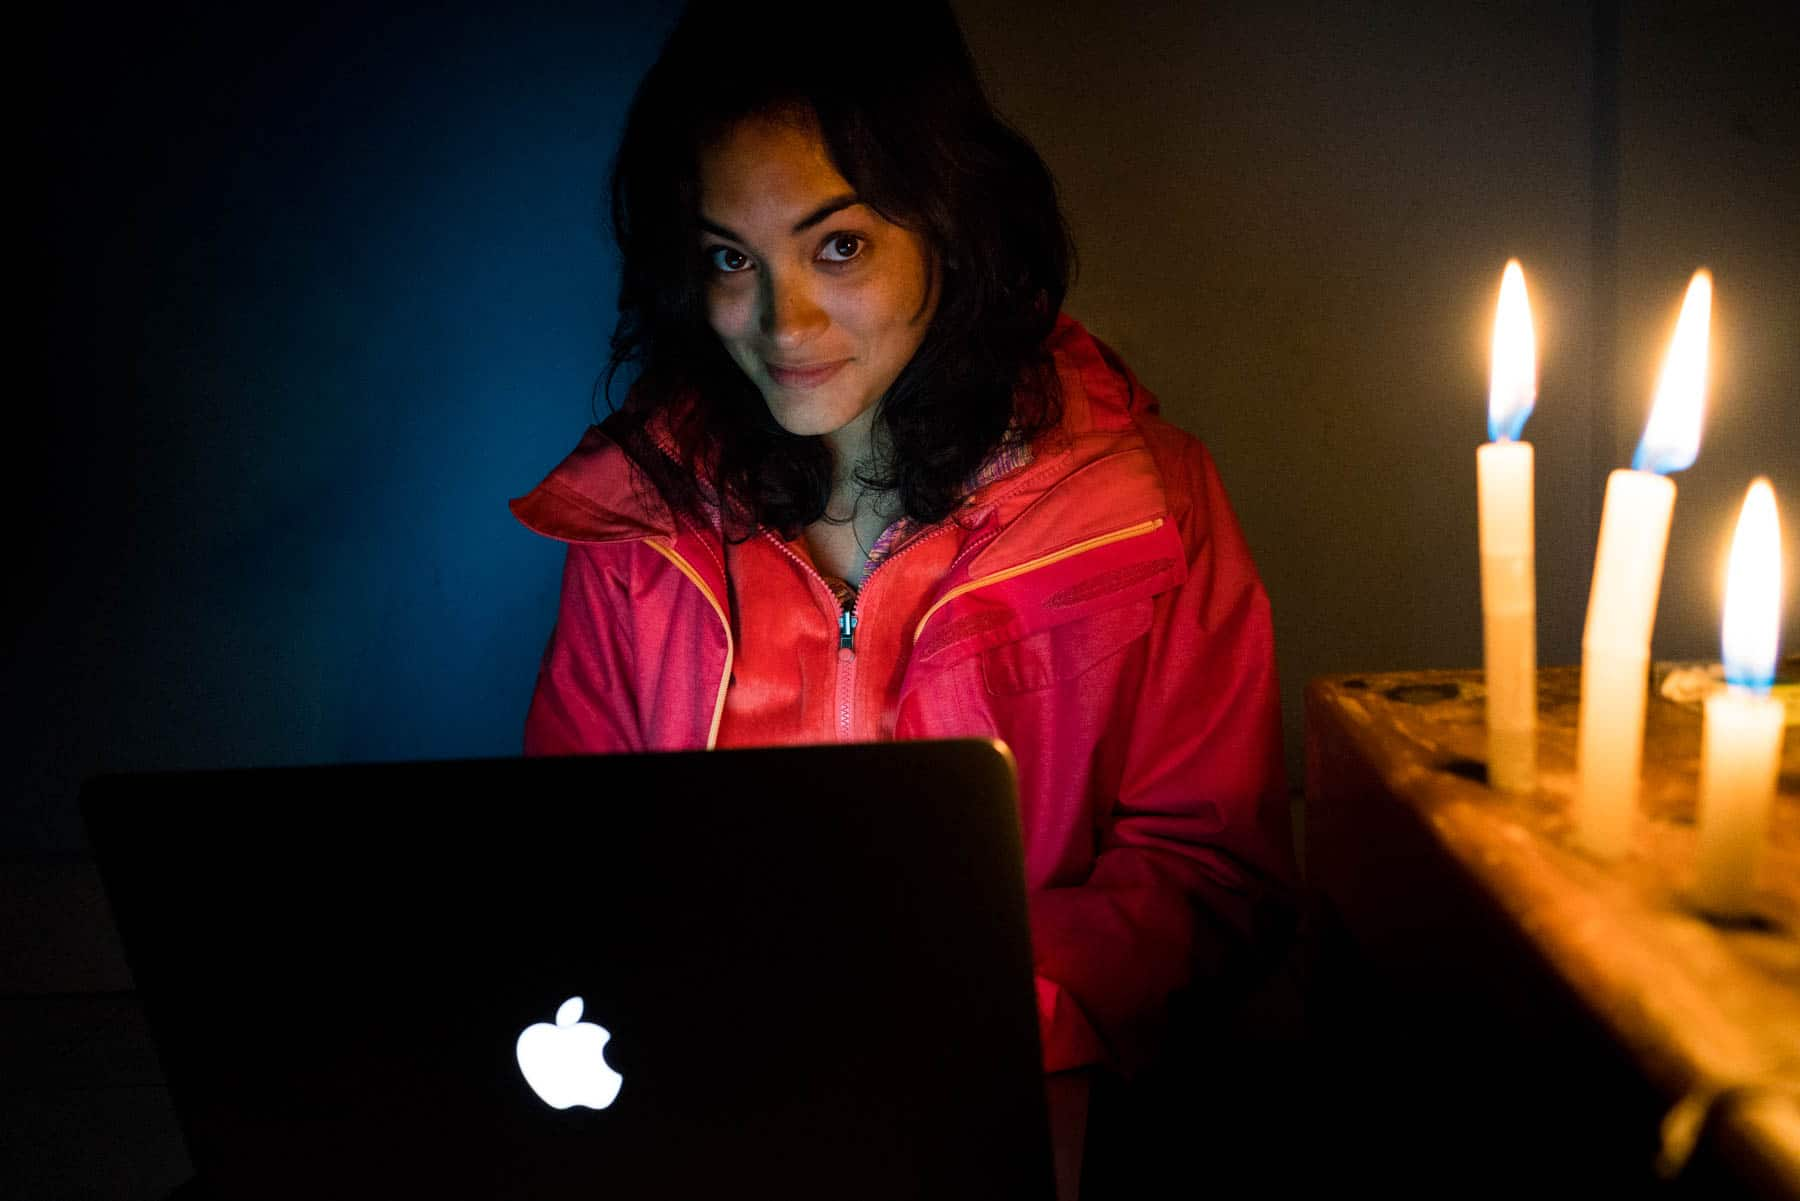 Monsoon travel packing list - Blogging by candlelight - Lost With Purpose